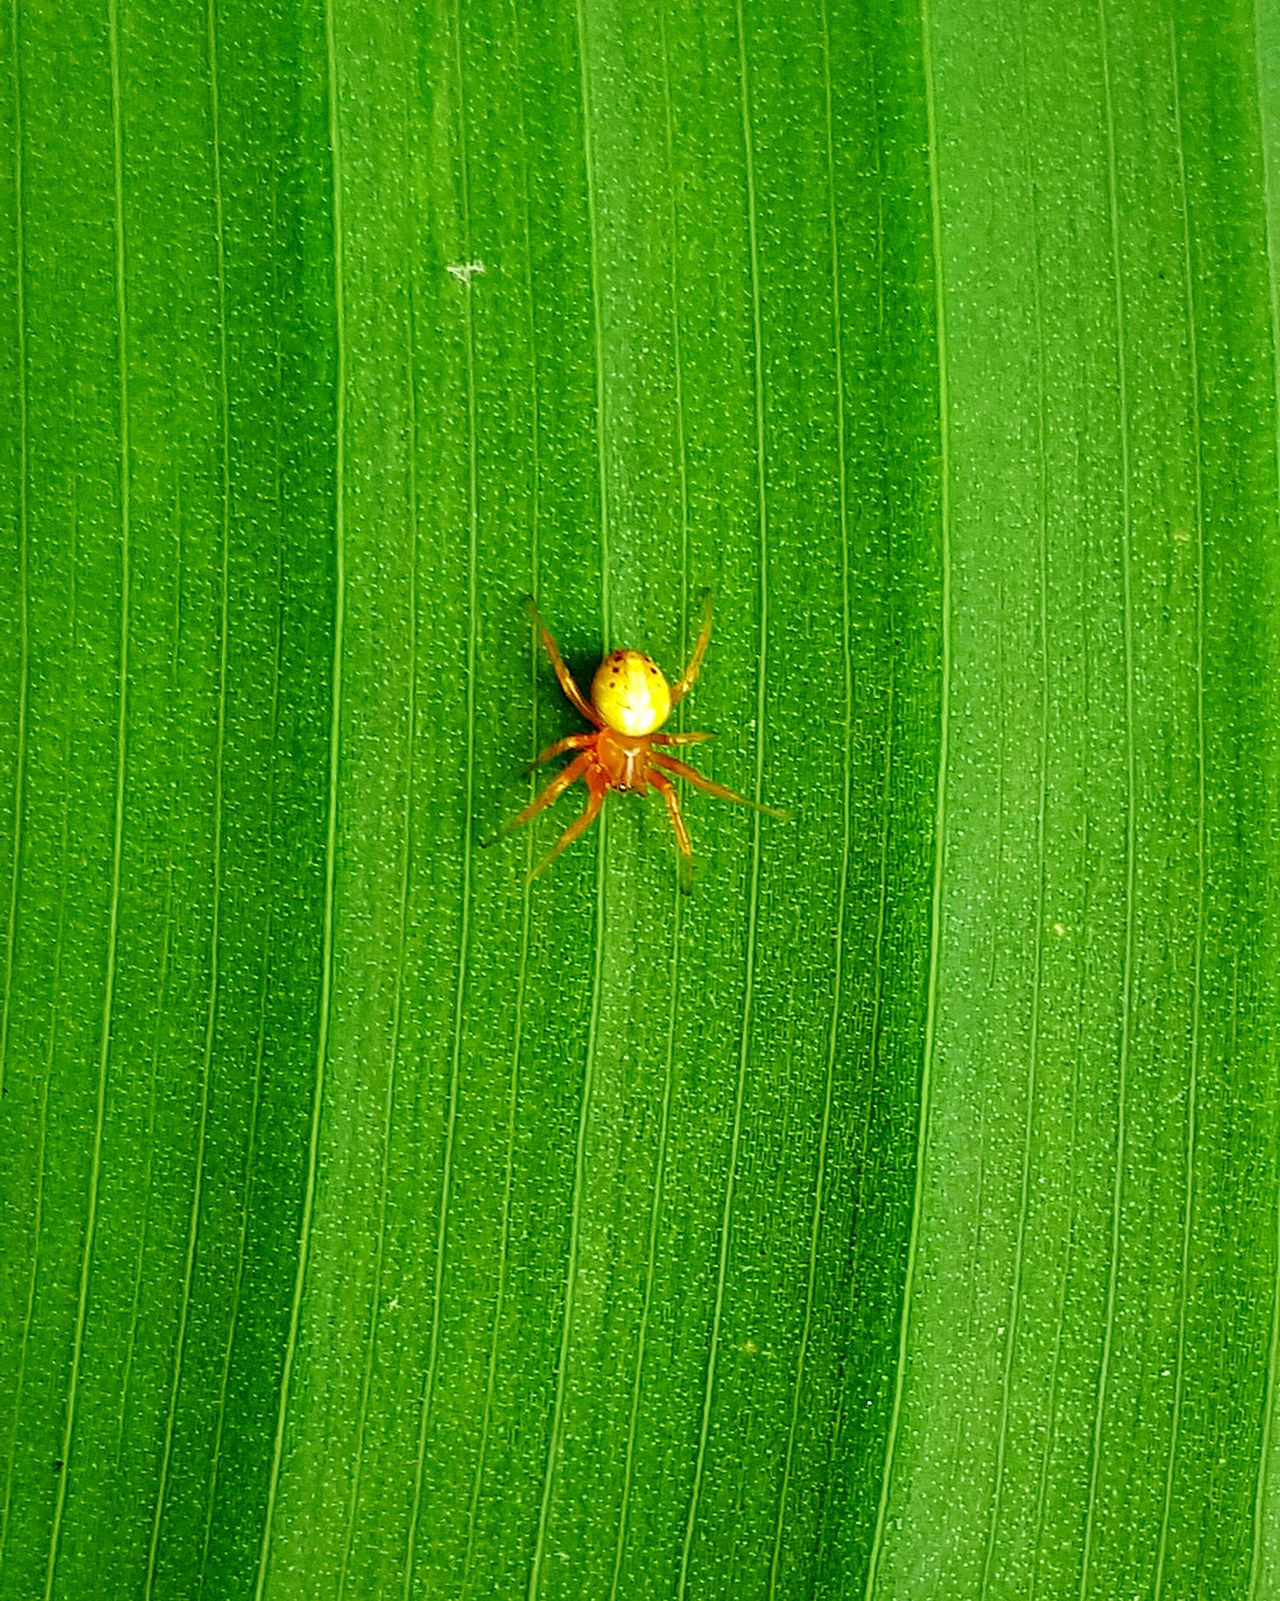 Spider Spiderworld Spider Nature_collection Eyenaturelover Arachnid Photography Arachnophobia Arachnid Arachnipocalypse Nature Is Art Fresh On Eyeem  Details Of Nature From My Point Of View Nature On Your Doorstep Nature_collection Naturephotography Showcase June 43 Golden Moments Colour Of Life Birds Eye Veiw Color Palette